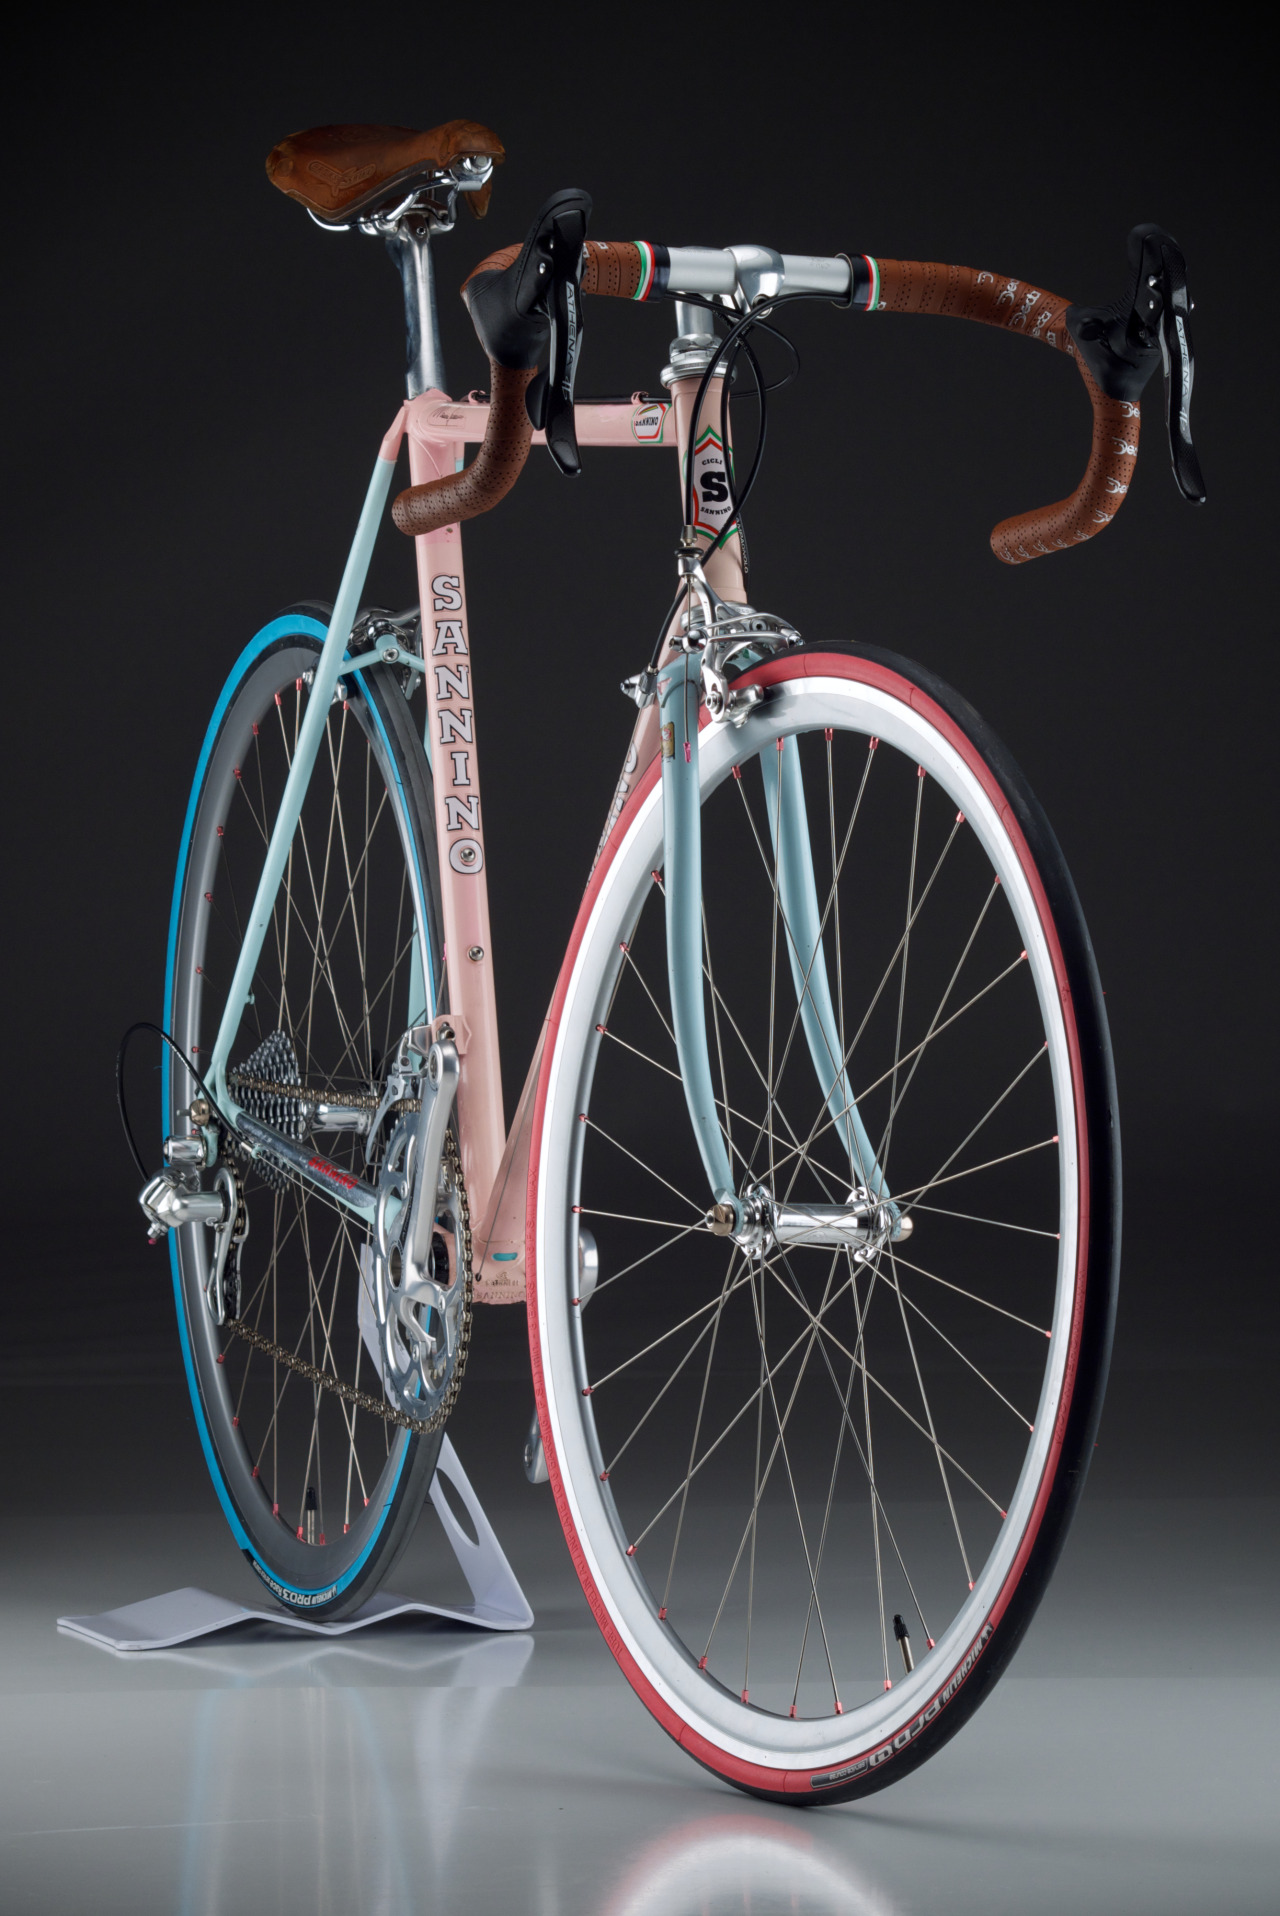 pedalfar:   Cotton Candy | Sannino (via mobius cycle)